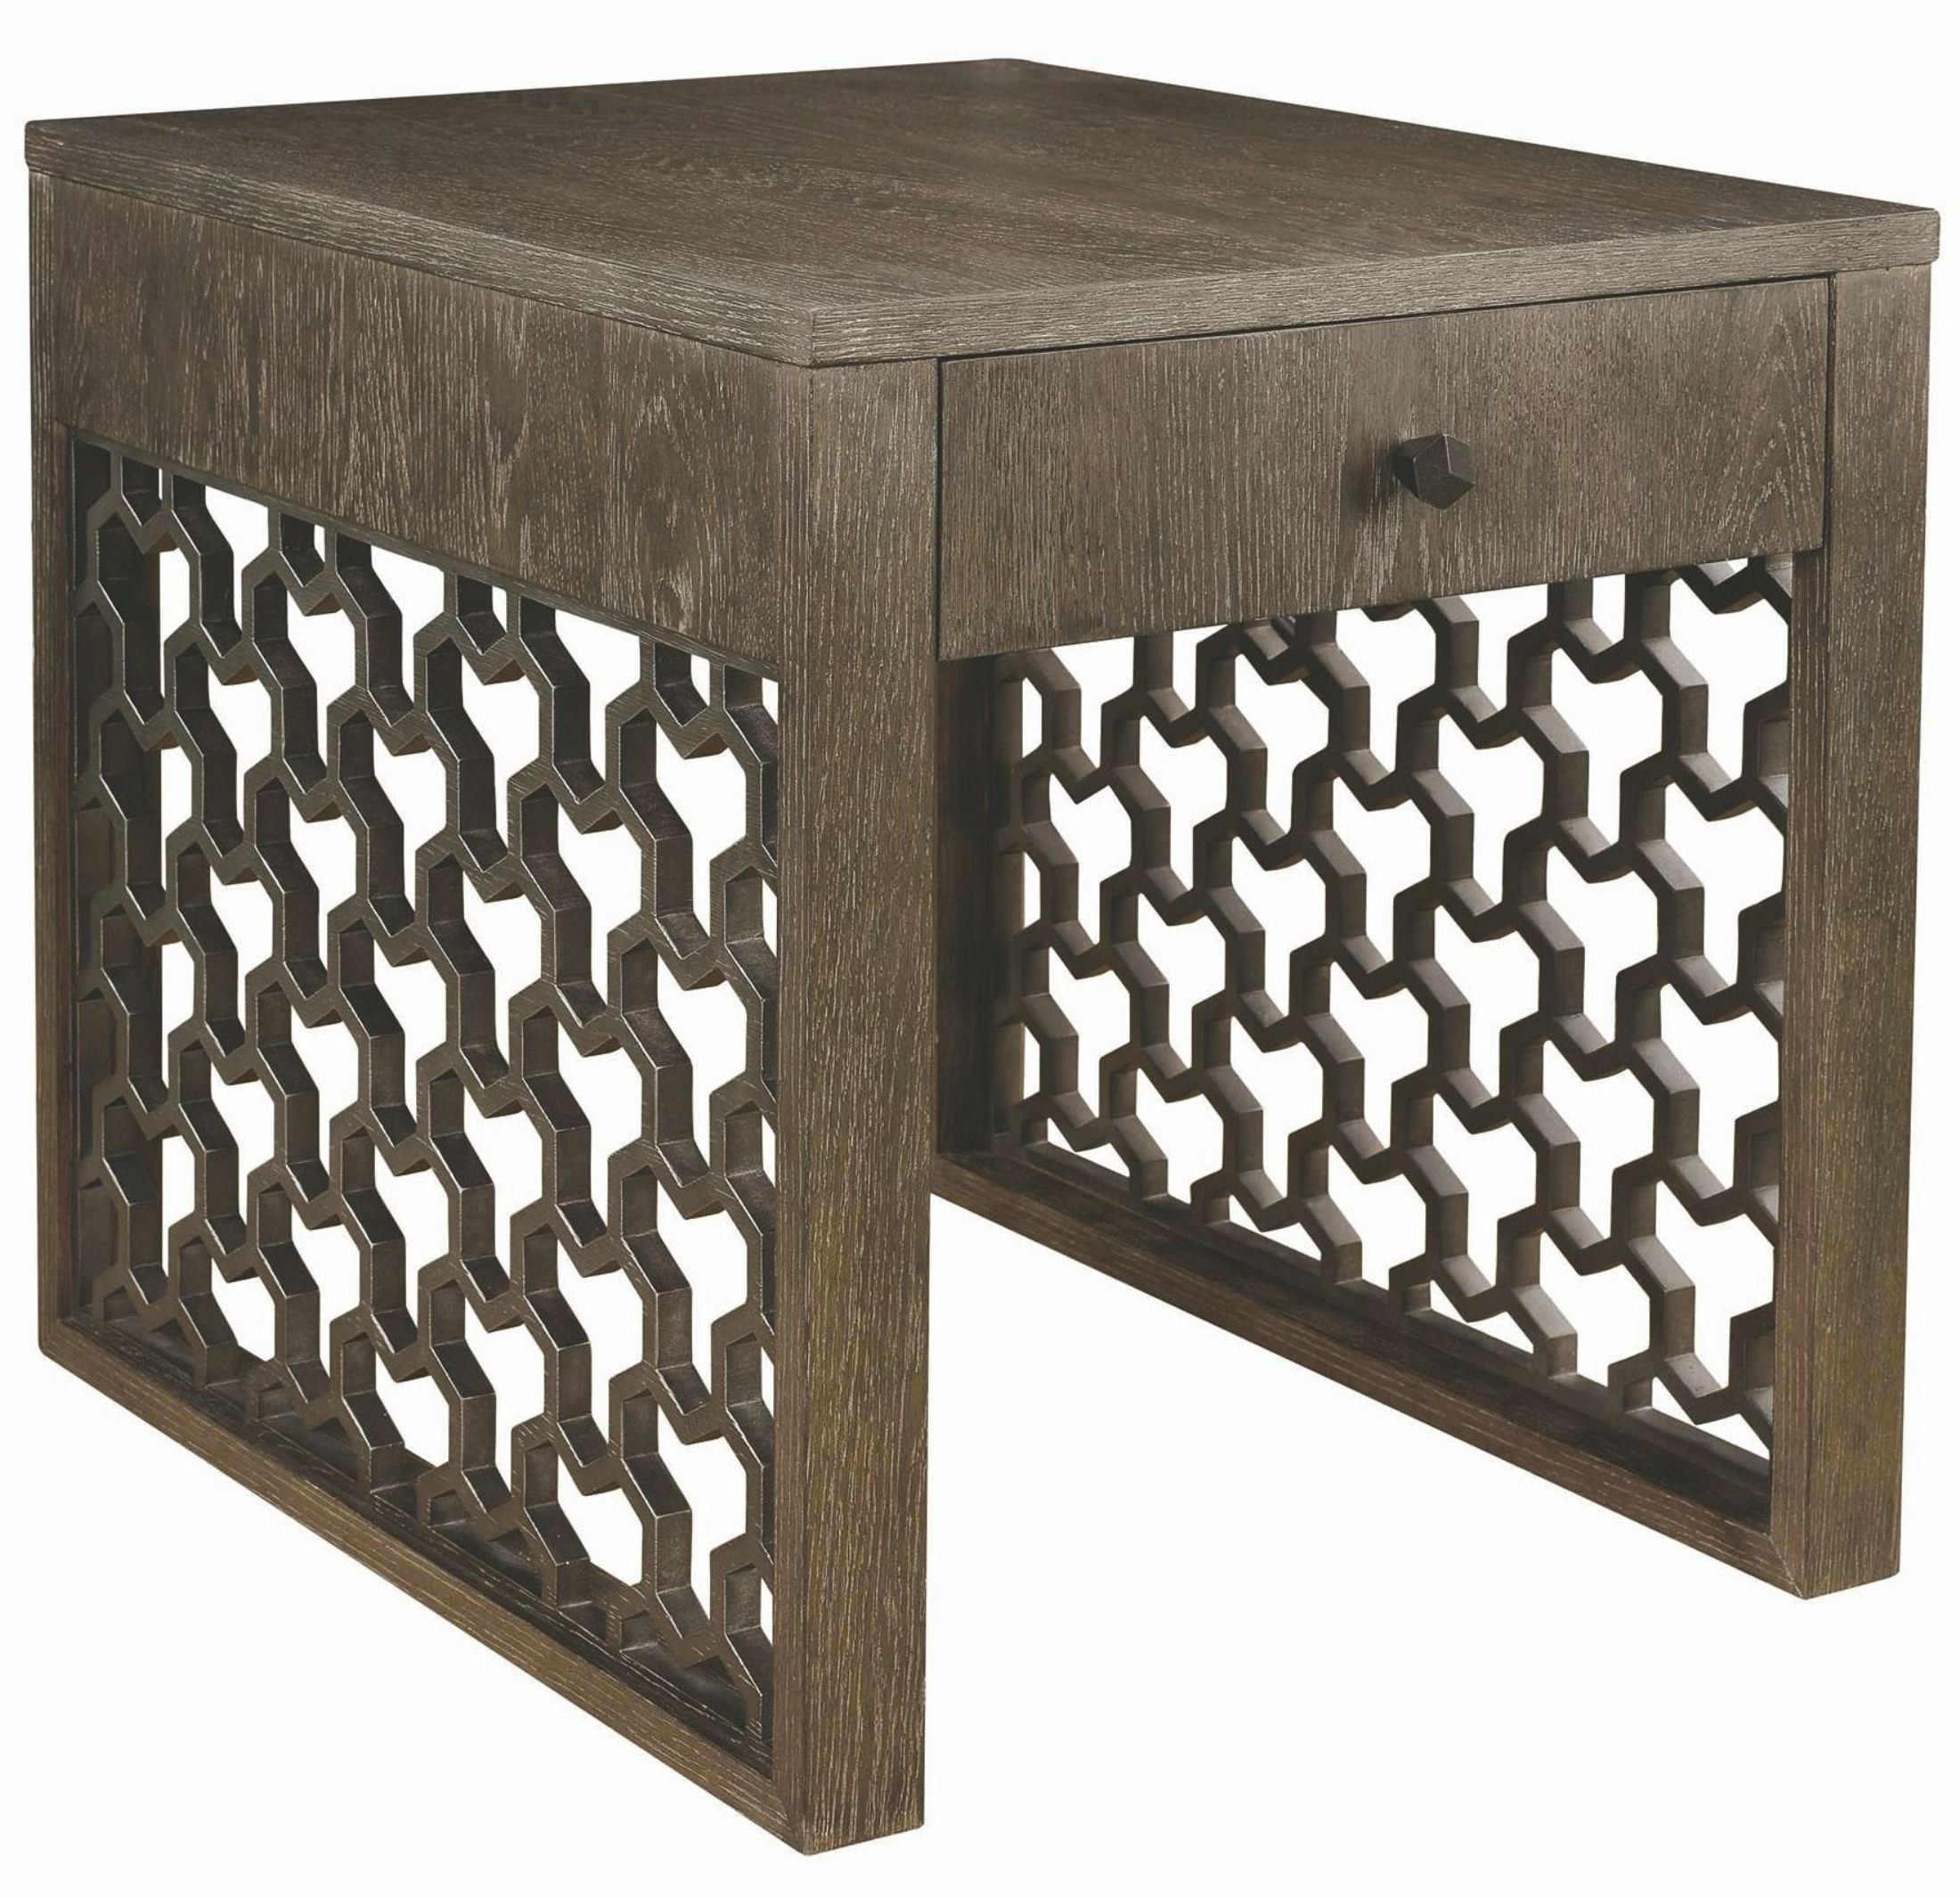 Geode warm kona tanzanite end table from art coleman for Geode side table